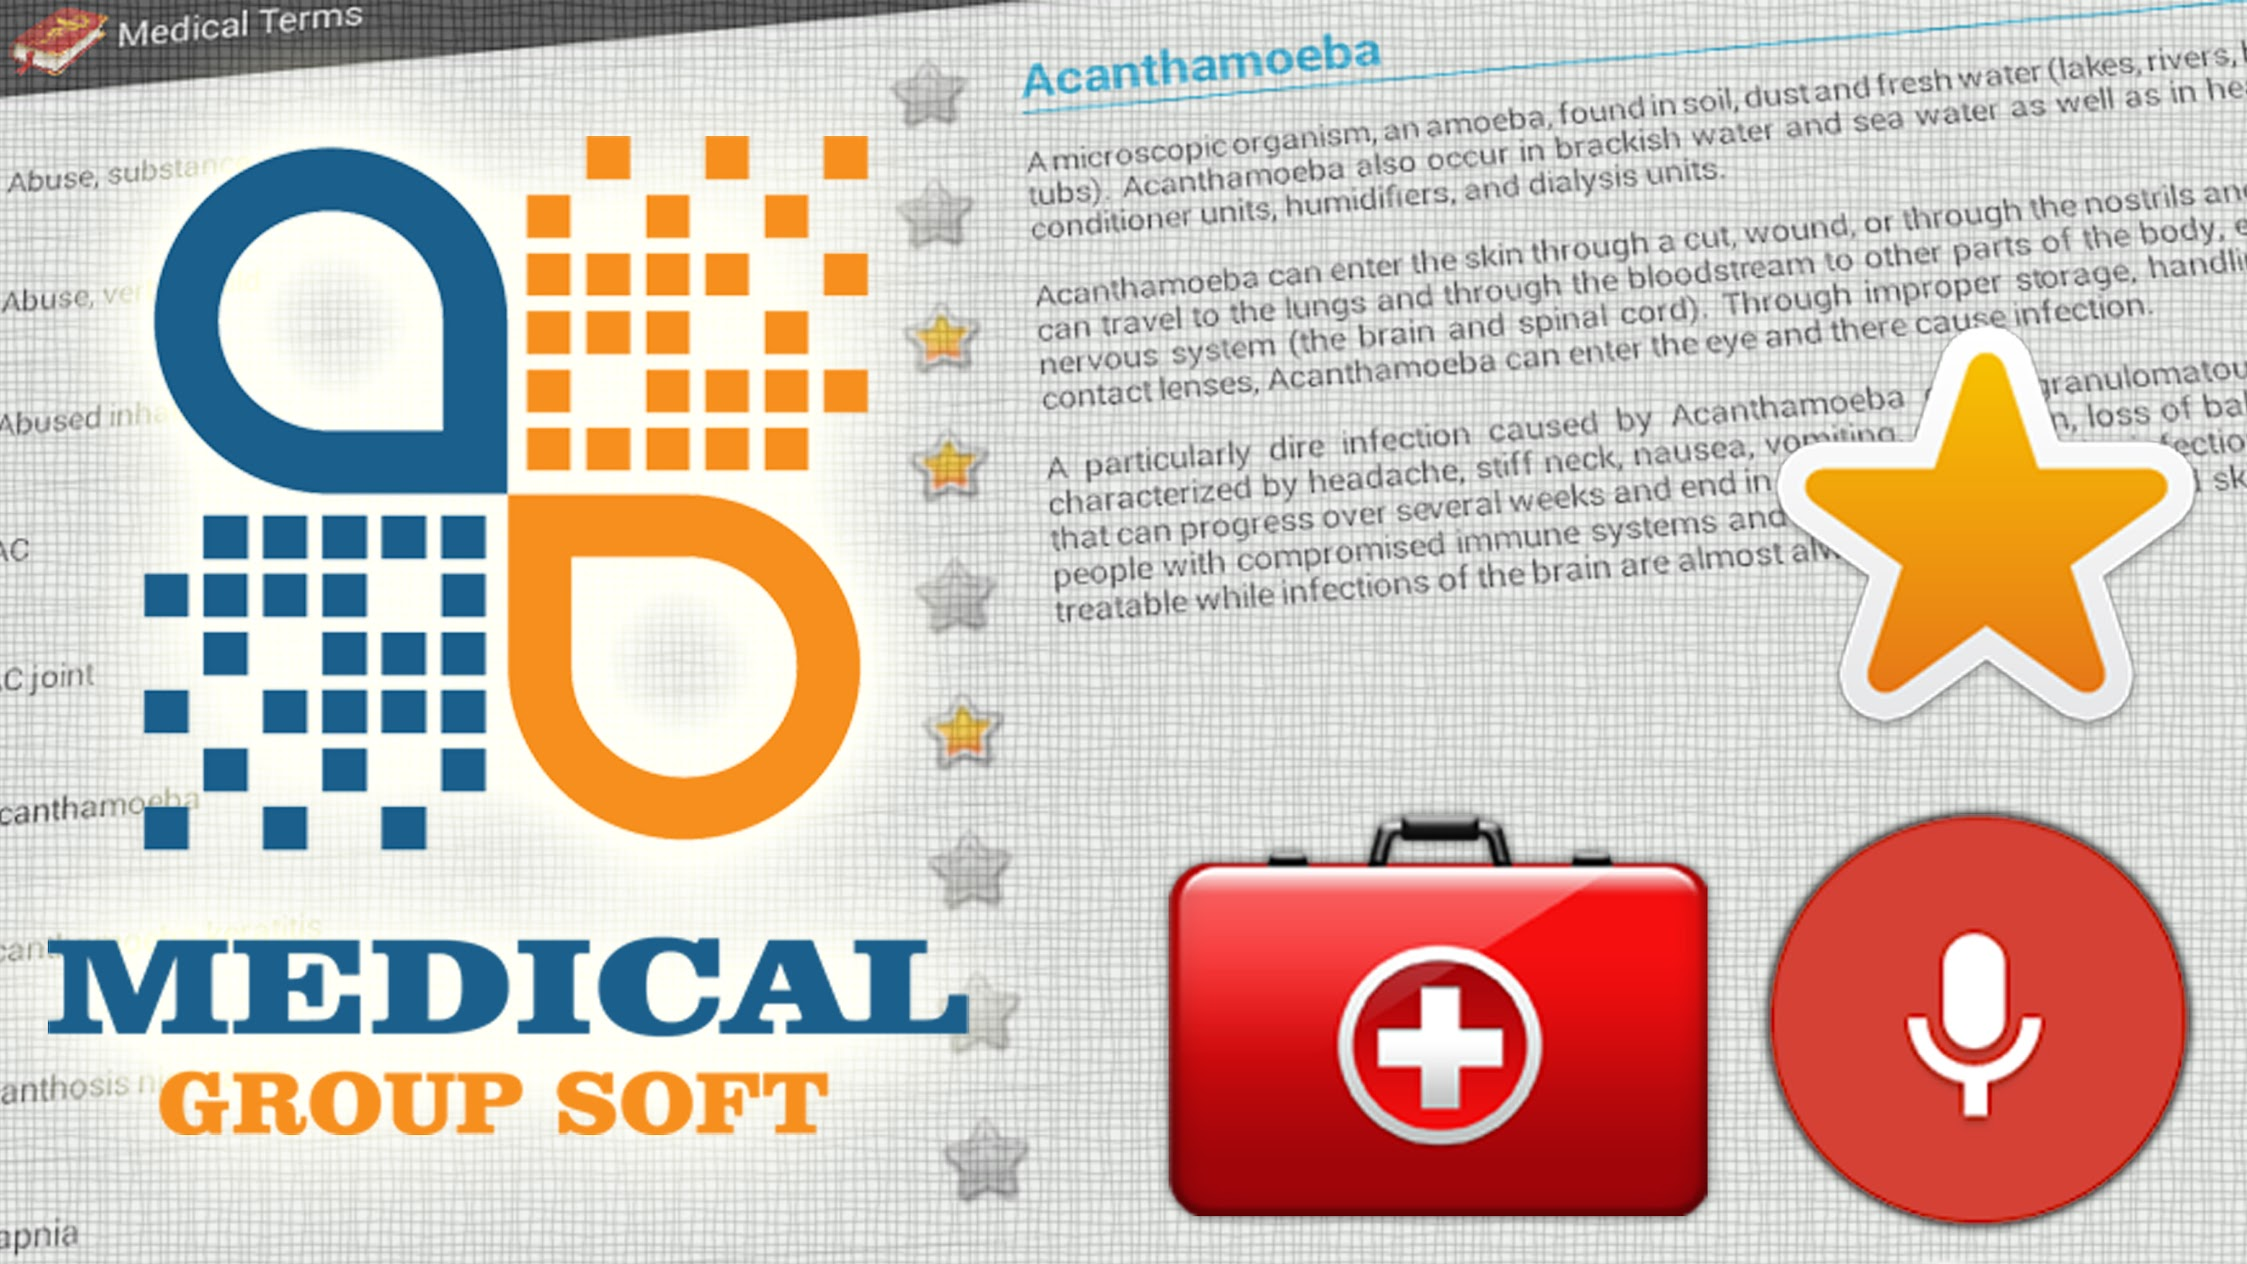 Medical Group Soft